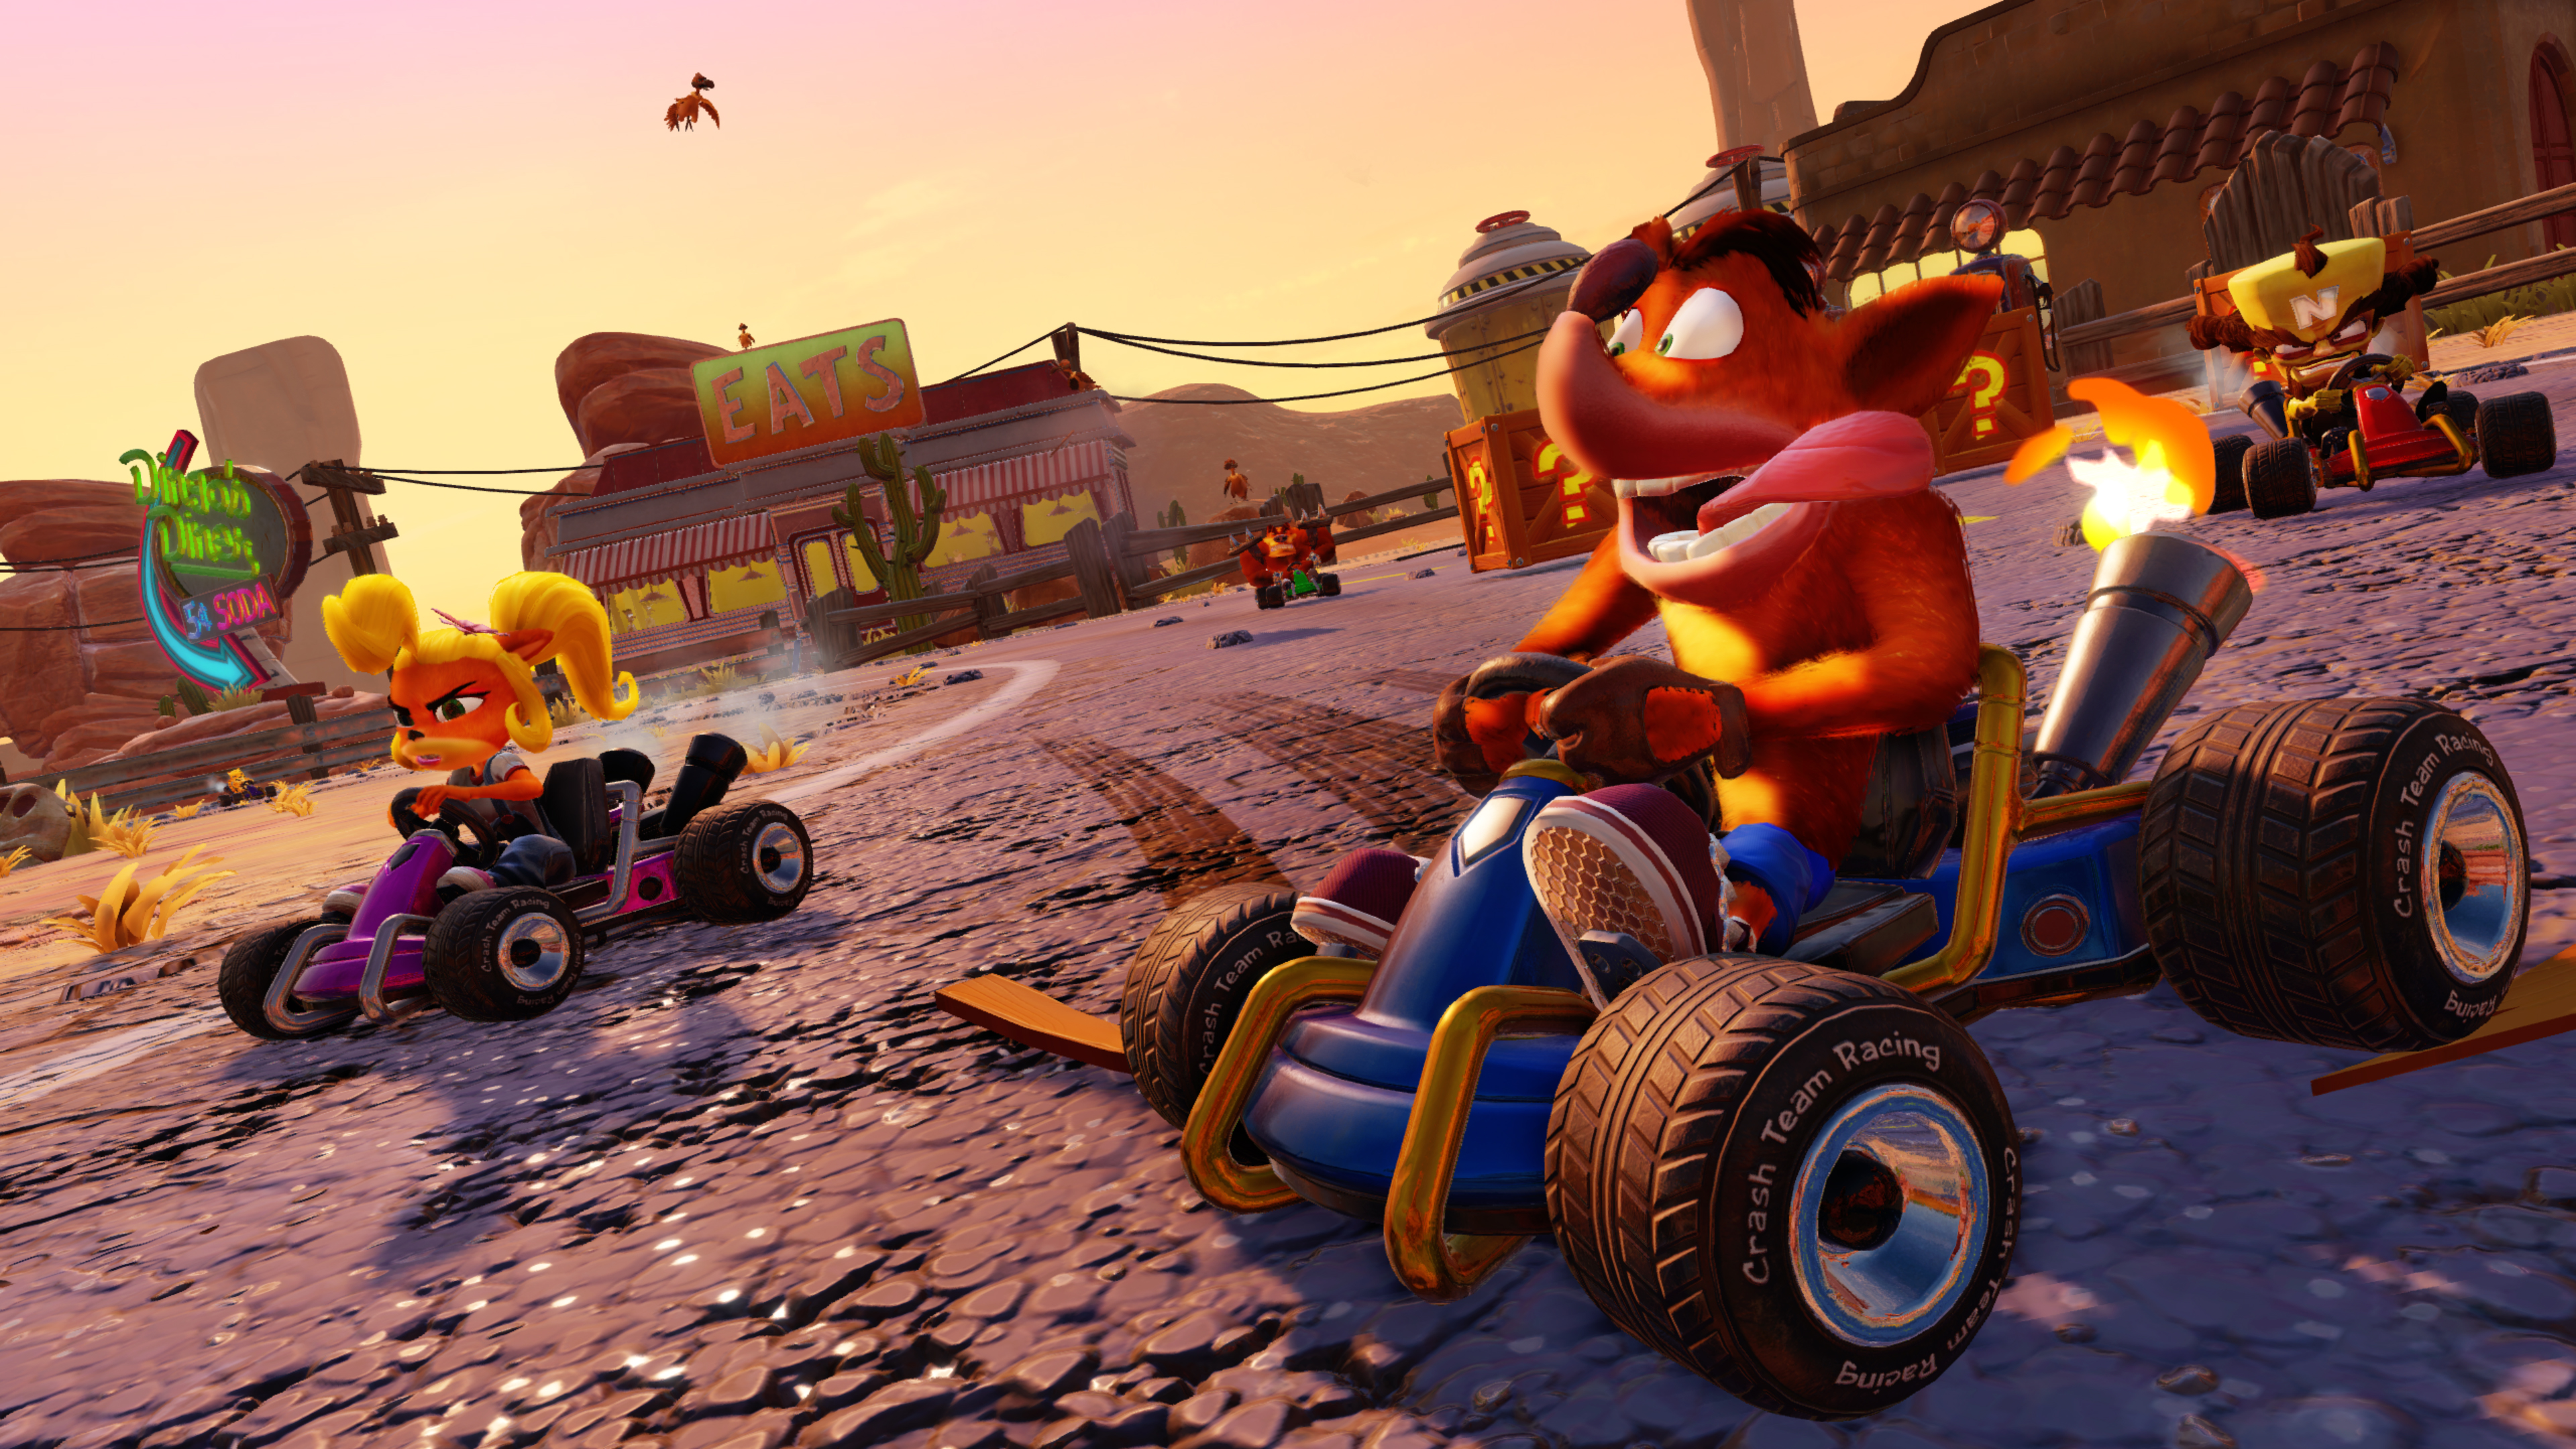 Crash Team Racing Nitro Fueled 4k Ultra HD Wallpaper Background 3840x2160